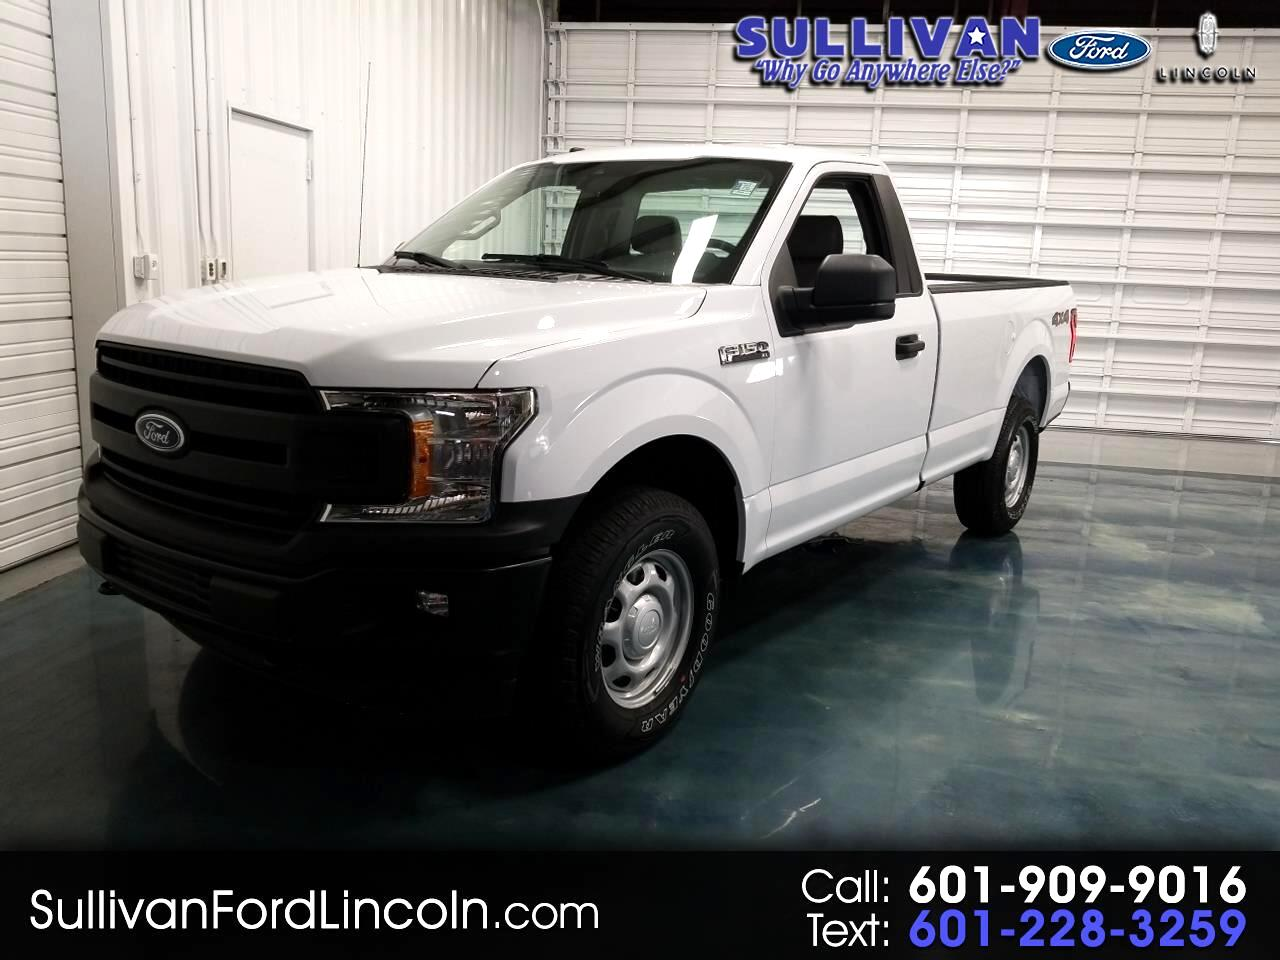 2019 Ford F-150 XL Reg. Cab Long Bed 4WD